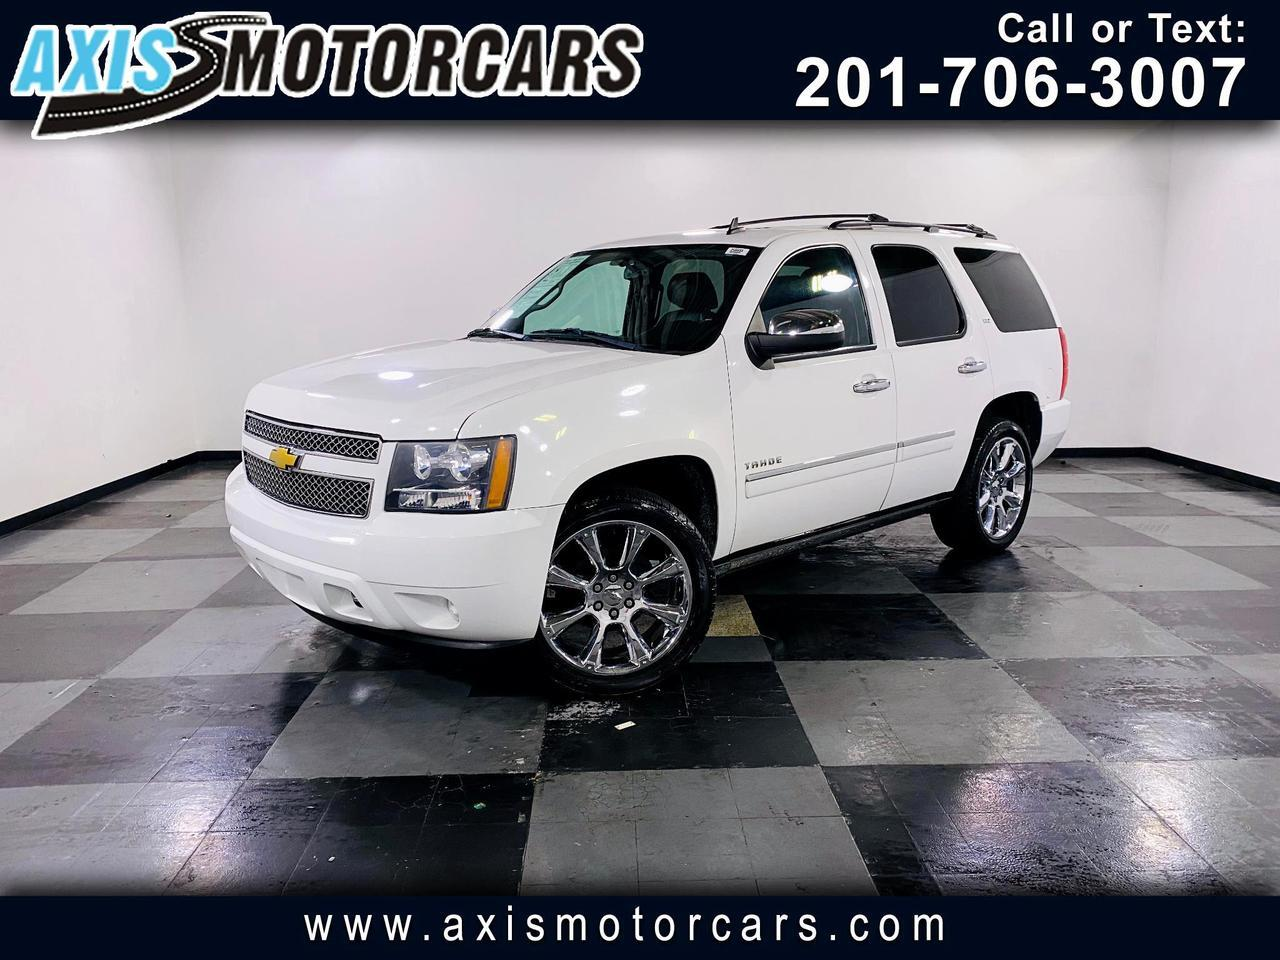 2013 Chevrolet Tahoe 4WD 4dr 1500 LTZ w/Rear Entertainment Backup Camer Jersey City NJ